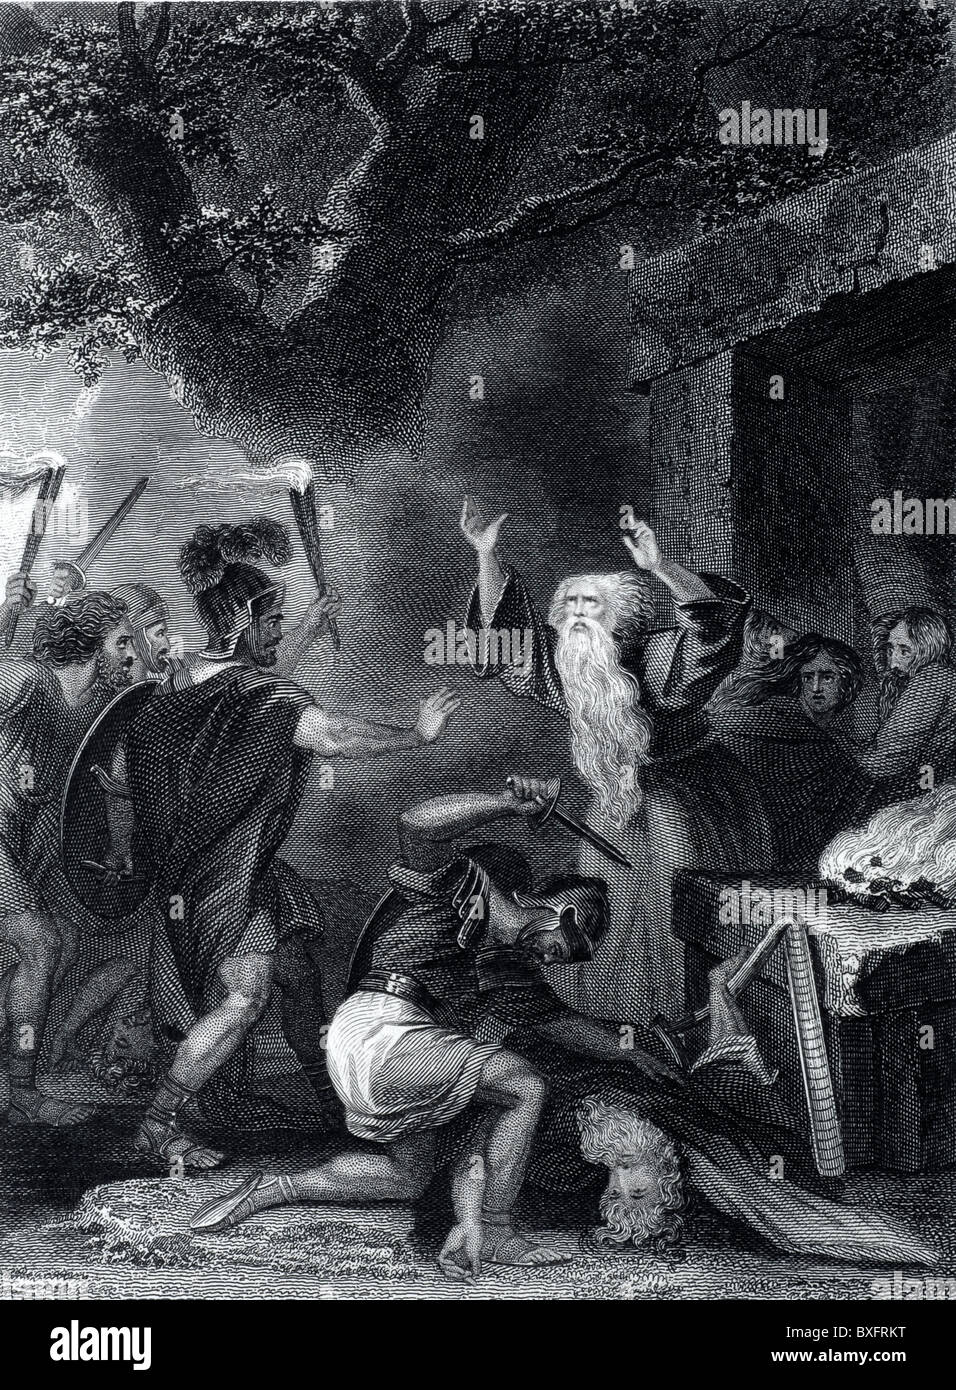 Roman Soldiers Massacre the Druids in England After the Roman Conquest or Roman Invasion of Britain (c19th Engraving) - Stock Image